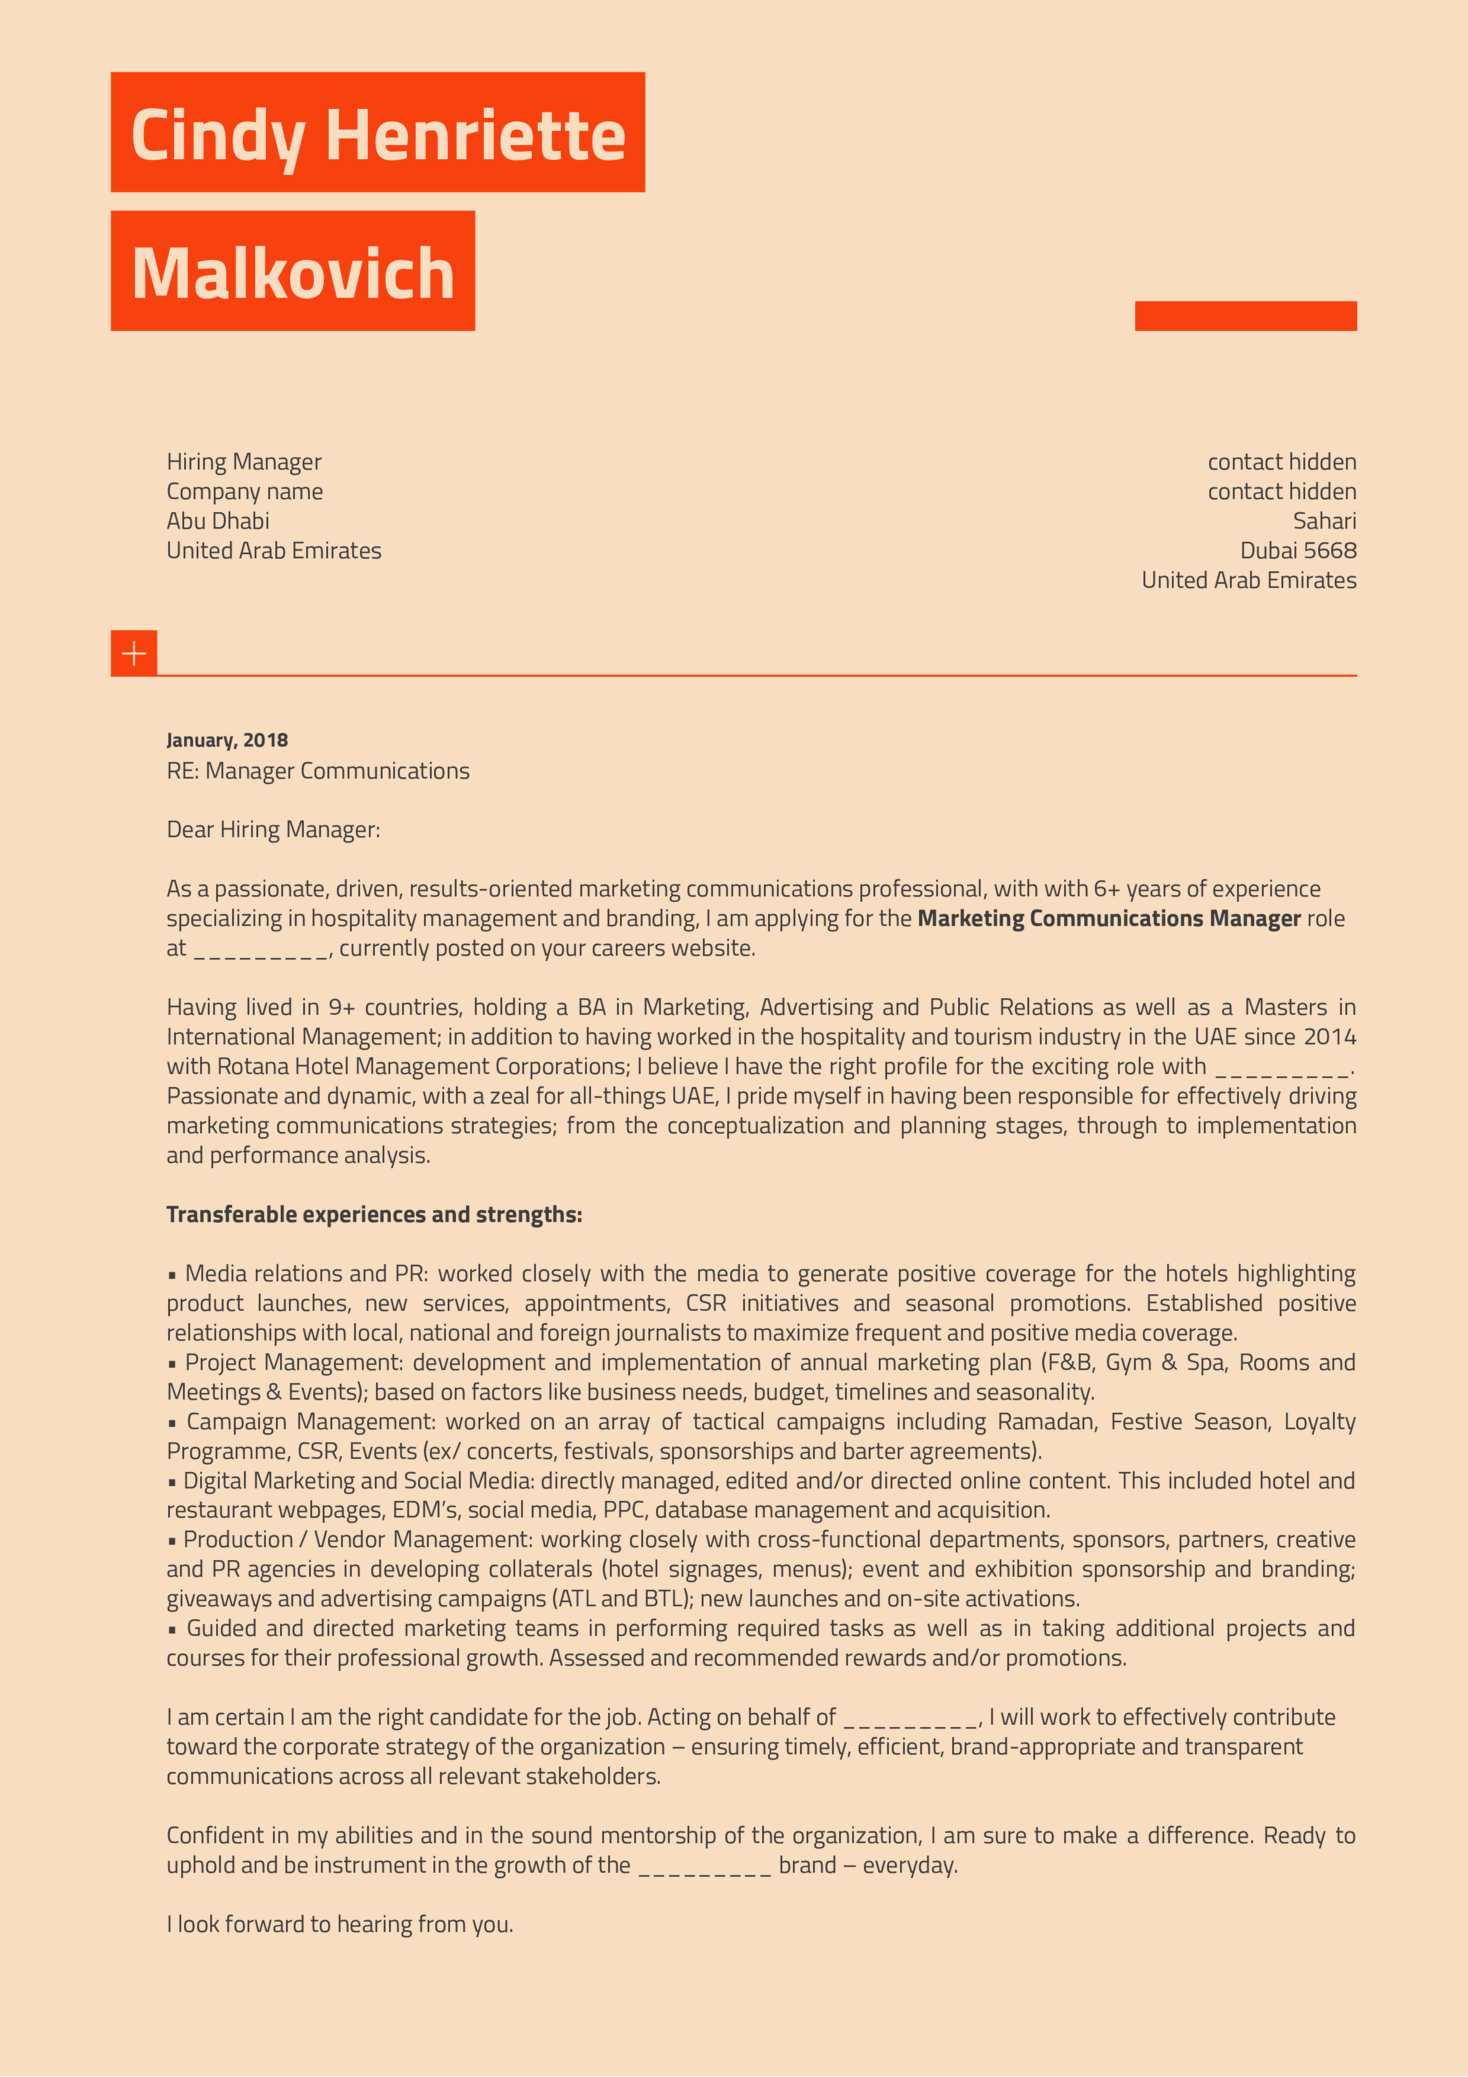 99+ Brand Marketing Cover Letter - Brand Manager Cover Letter